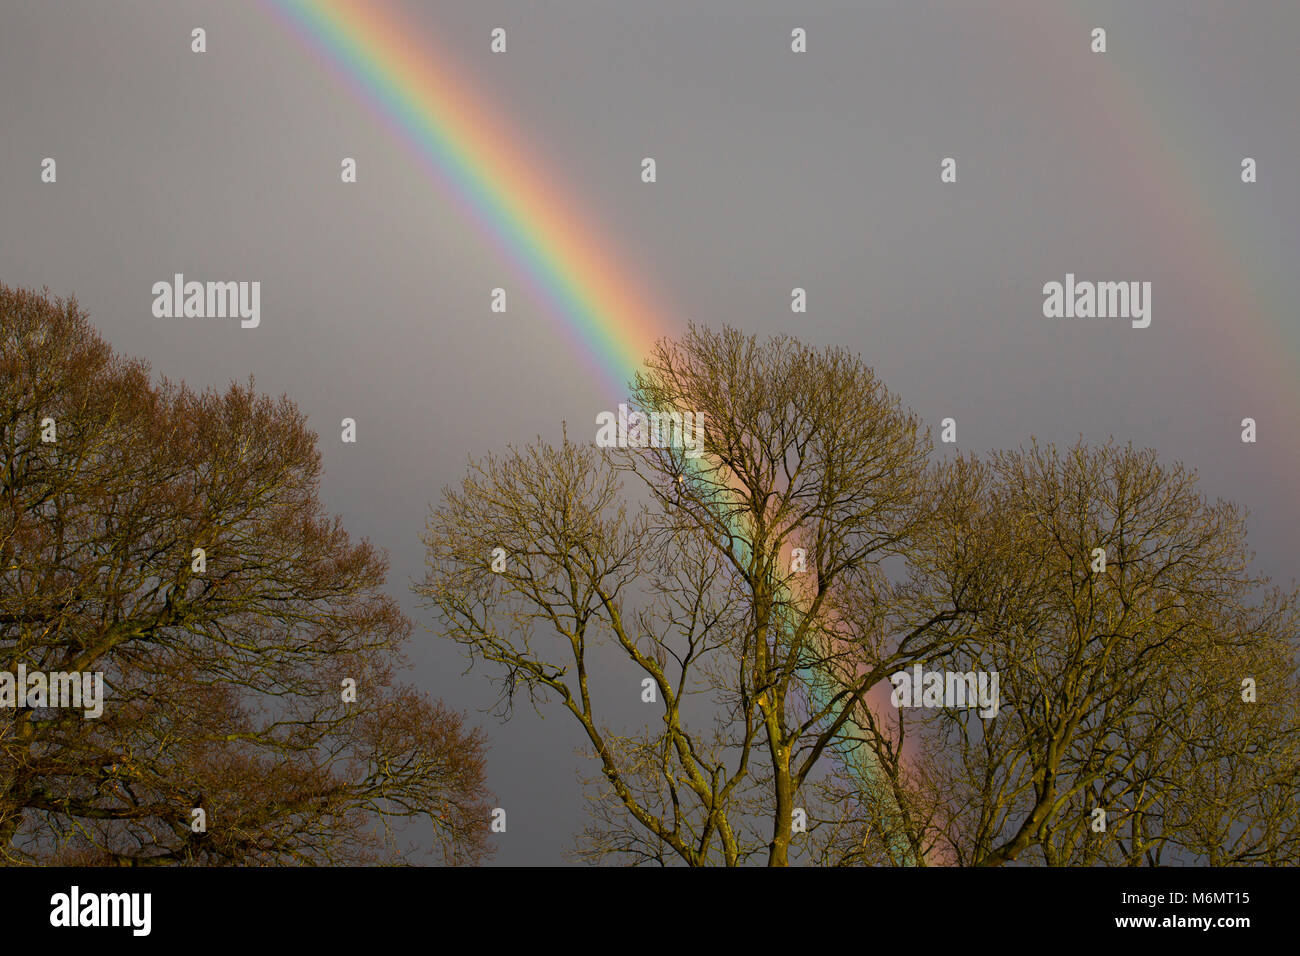 A rainbow behind trees in the UK - Stock Image